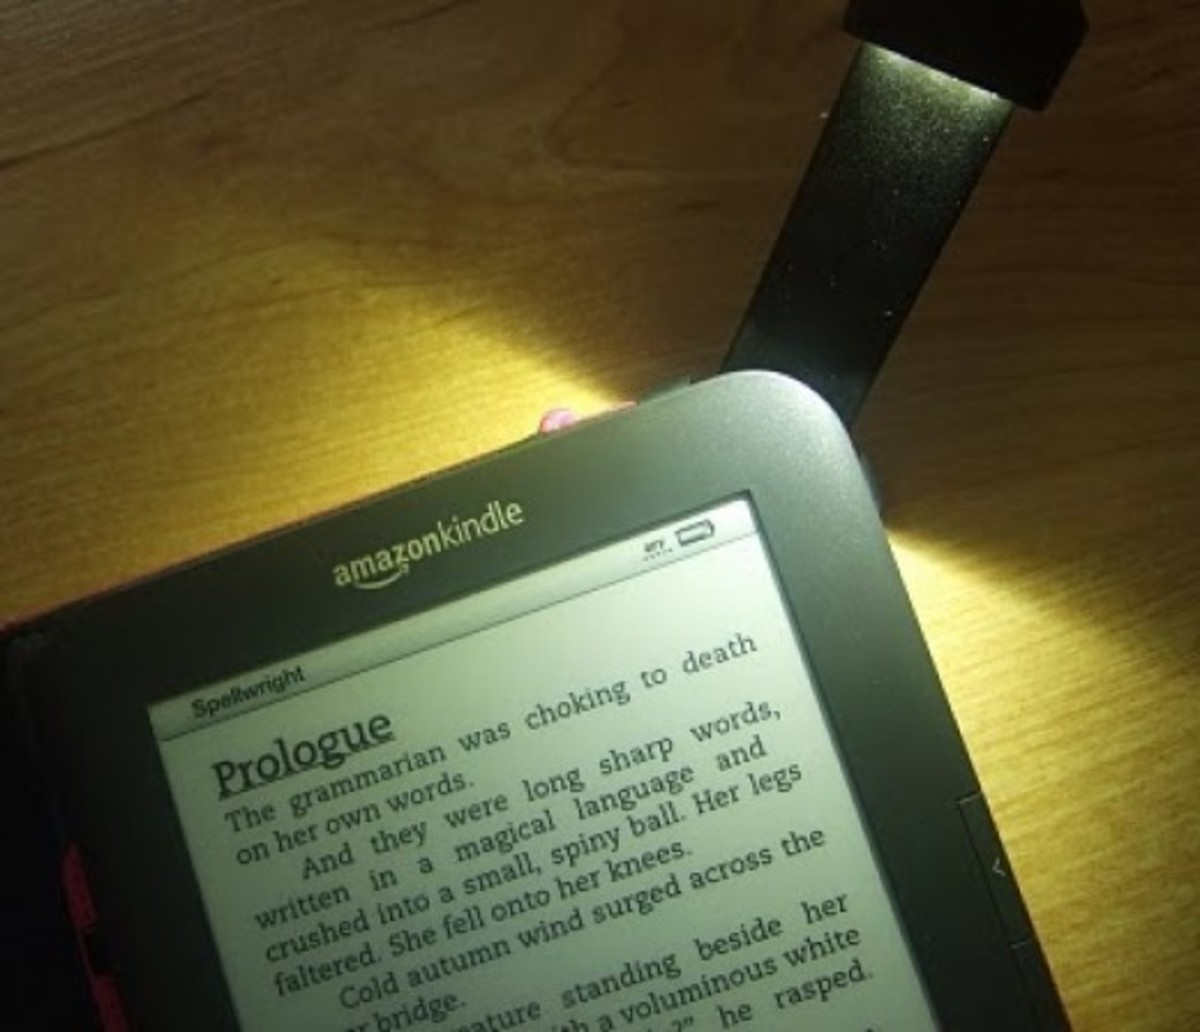 Cover light in action on the older Amazon Kindle Keyboard